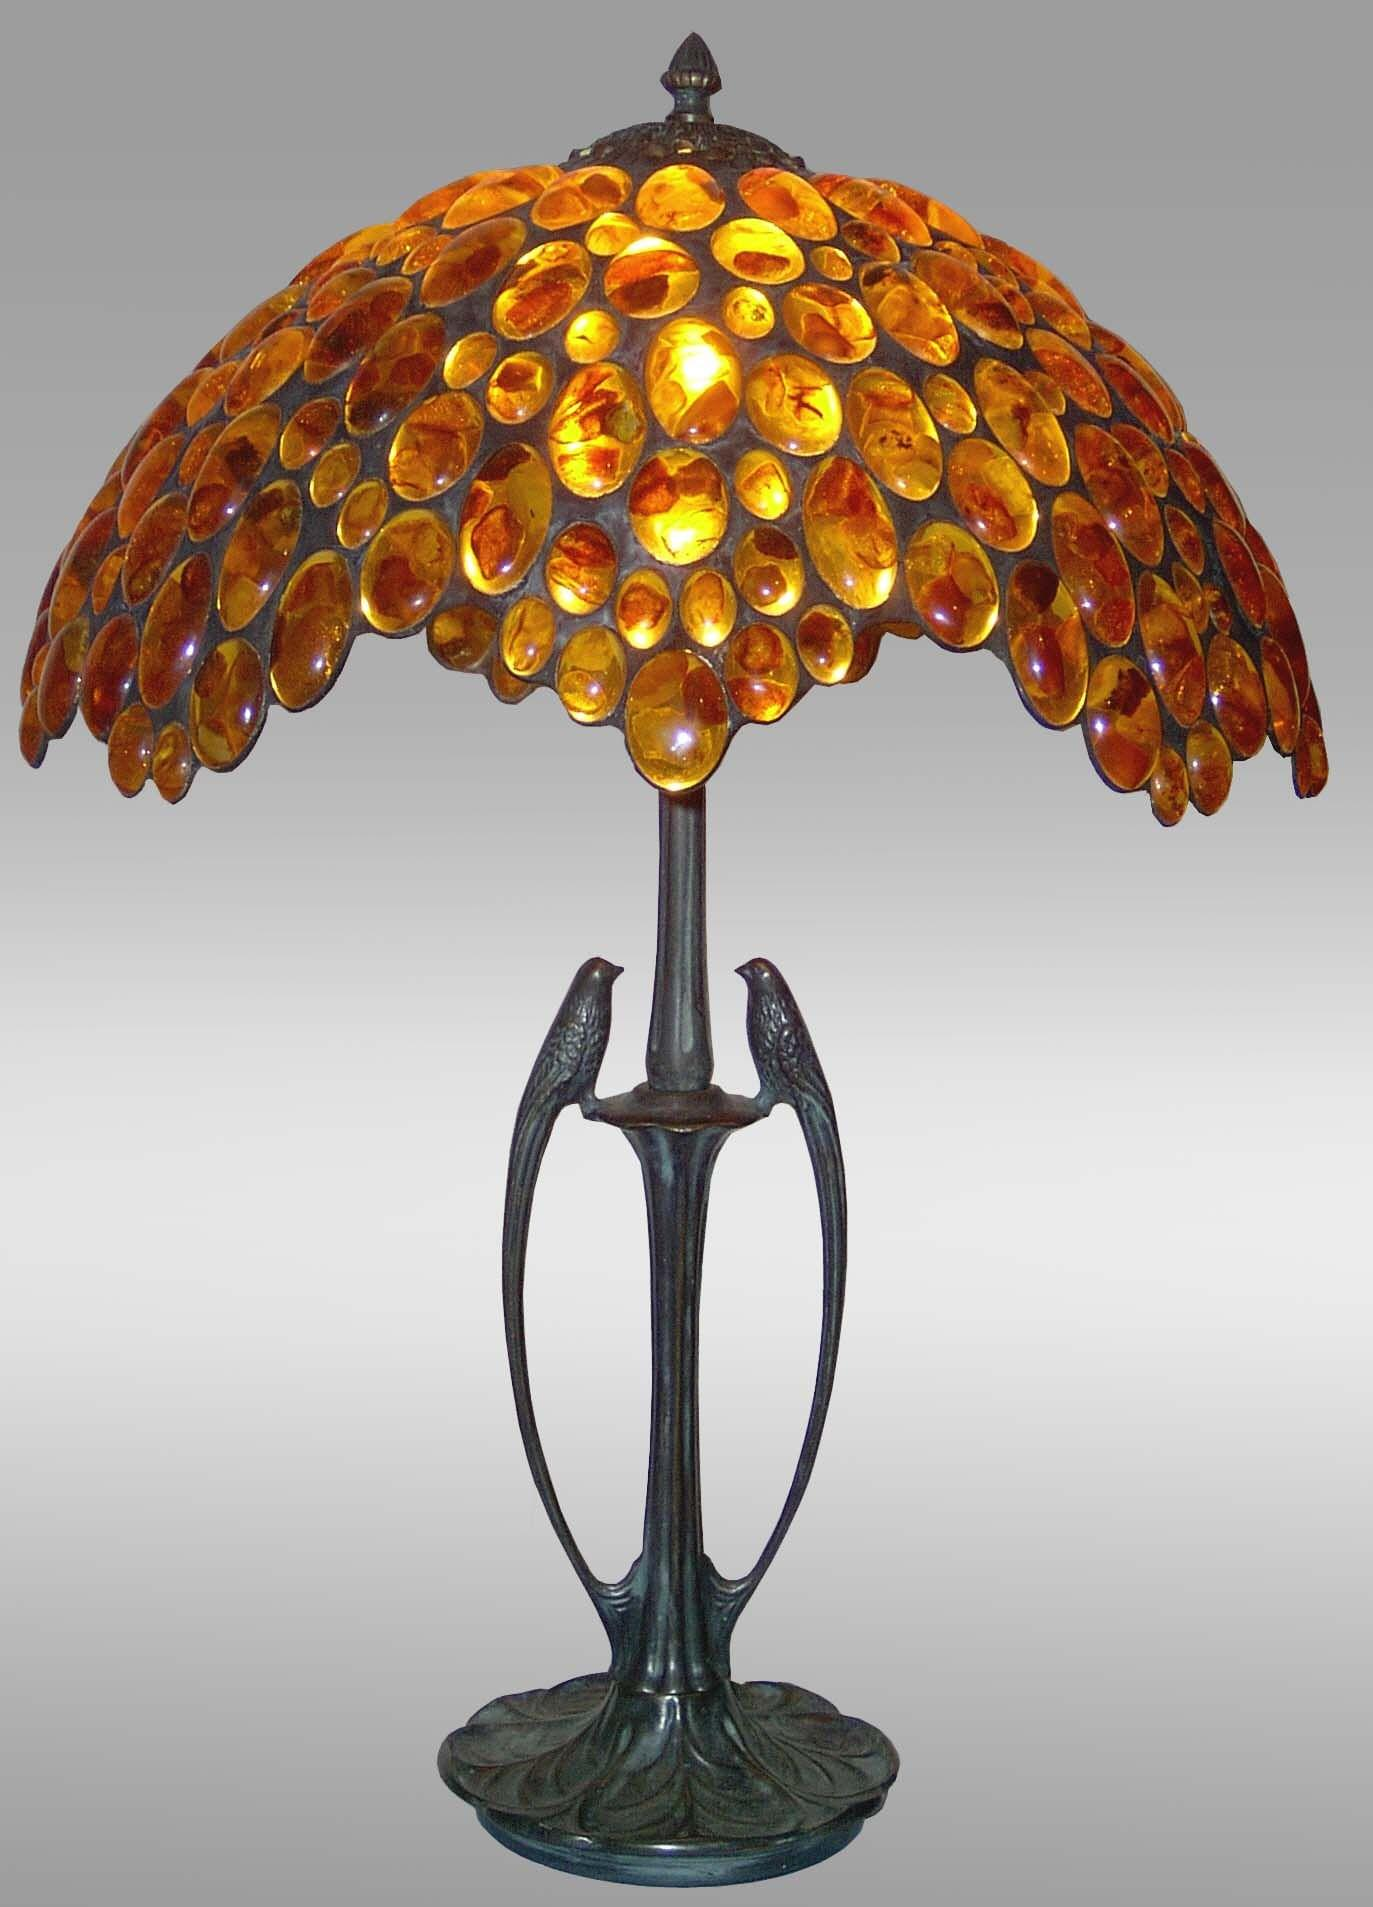 luxury tiffany lamp amber table lamp large birds lamp with solid. Black Bedroom Furniture Sets. Home Design Ideas